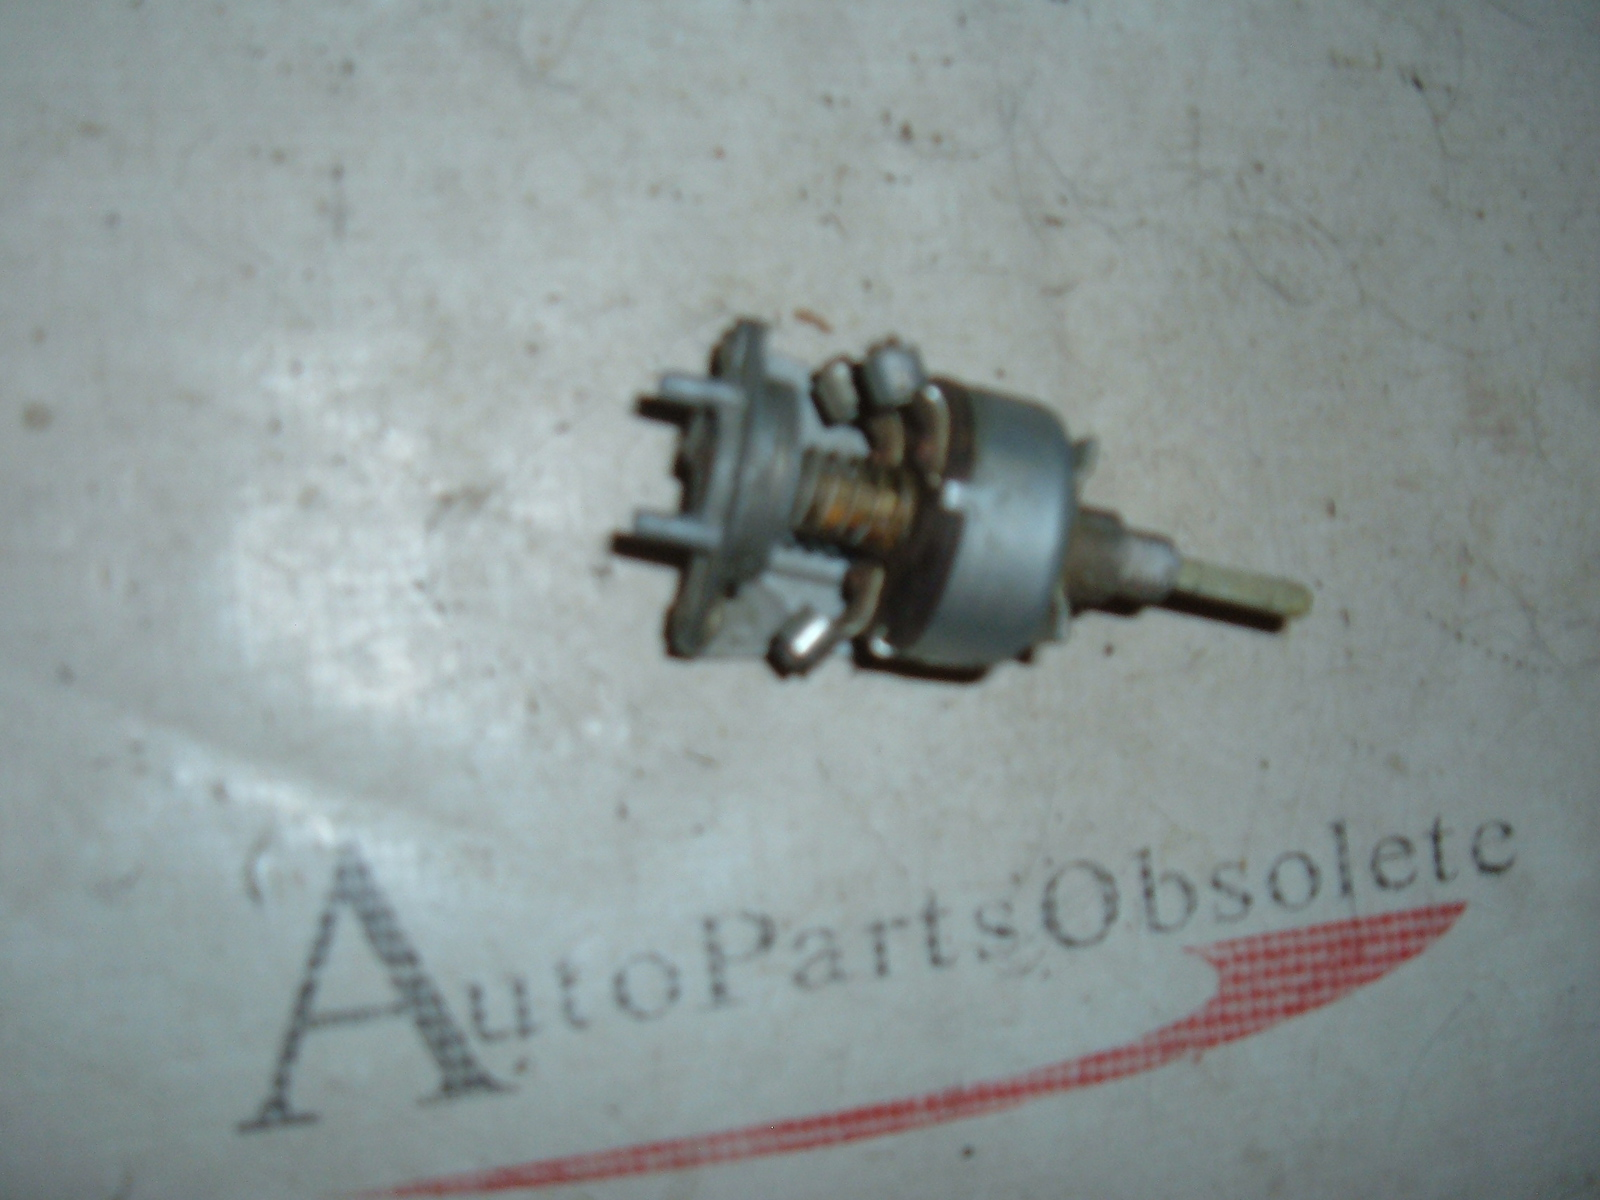 View Product1959 rambler rebel ambassador defroster air conditioning switch nos 3435646 (z 3435646)